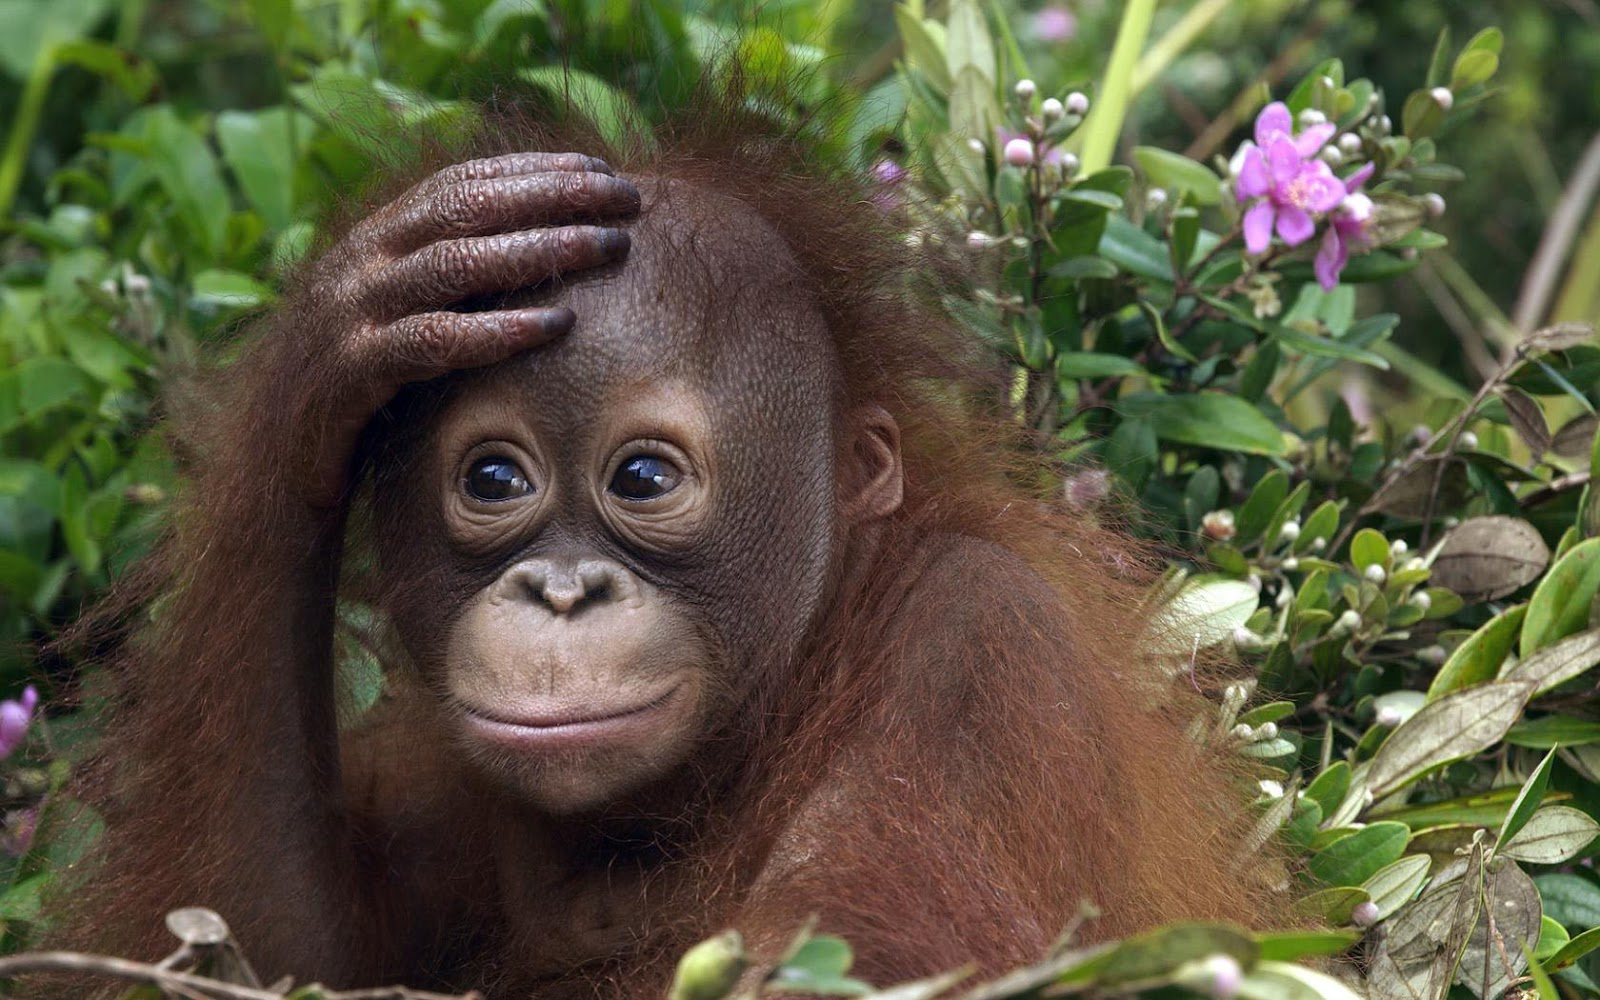 HD animals wallpaper of a cute orangutan baby HD monkeys wallpapers 1600x1000